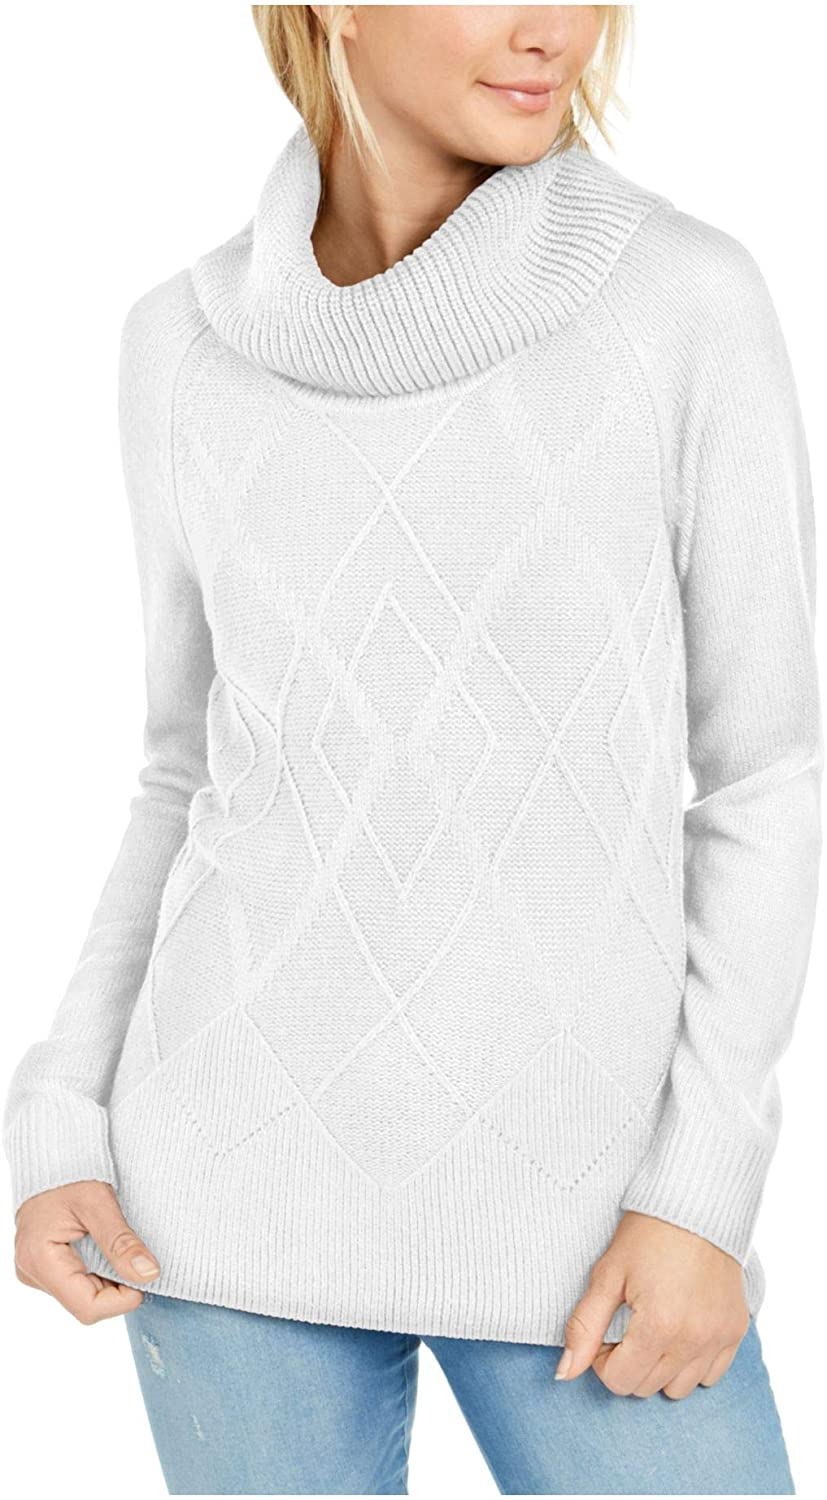 Tommy Hilfiger Womens Ivory Long Sleeve Cowl Neck Sweater Size XXL